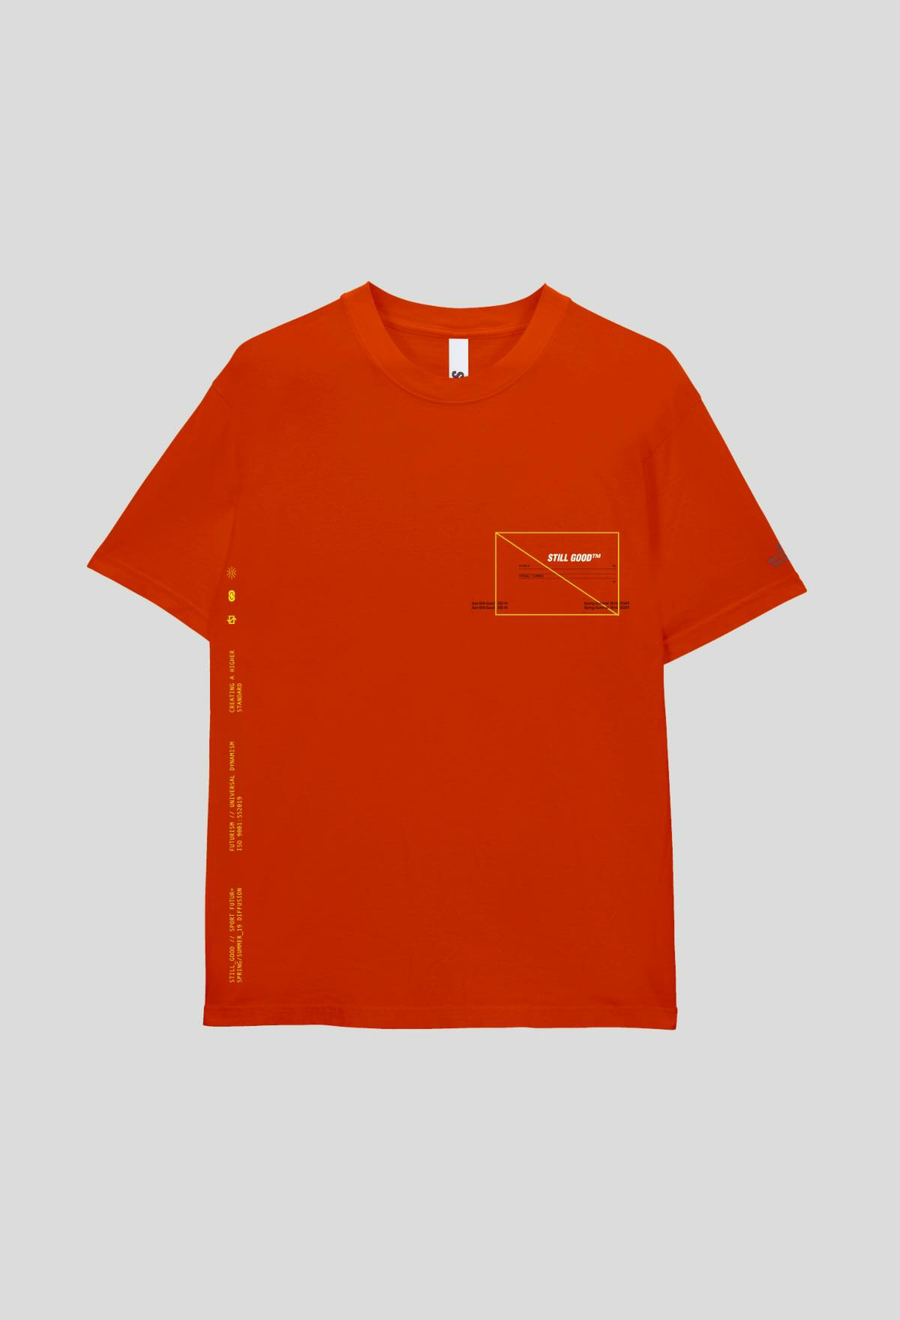 Texture Tee Orange / XS | Still Good